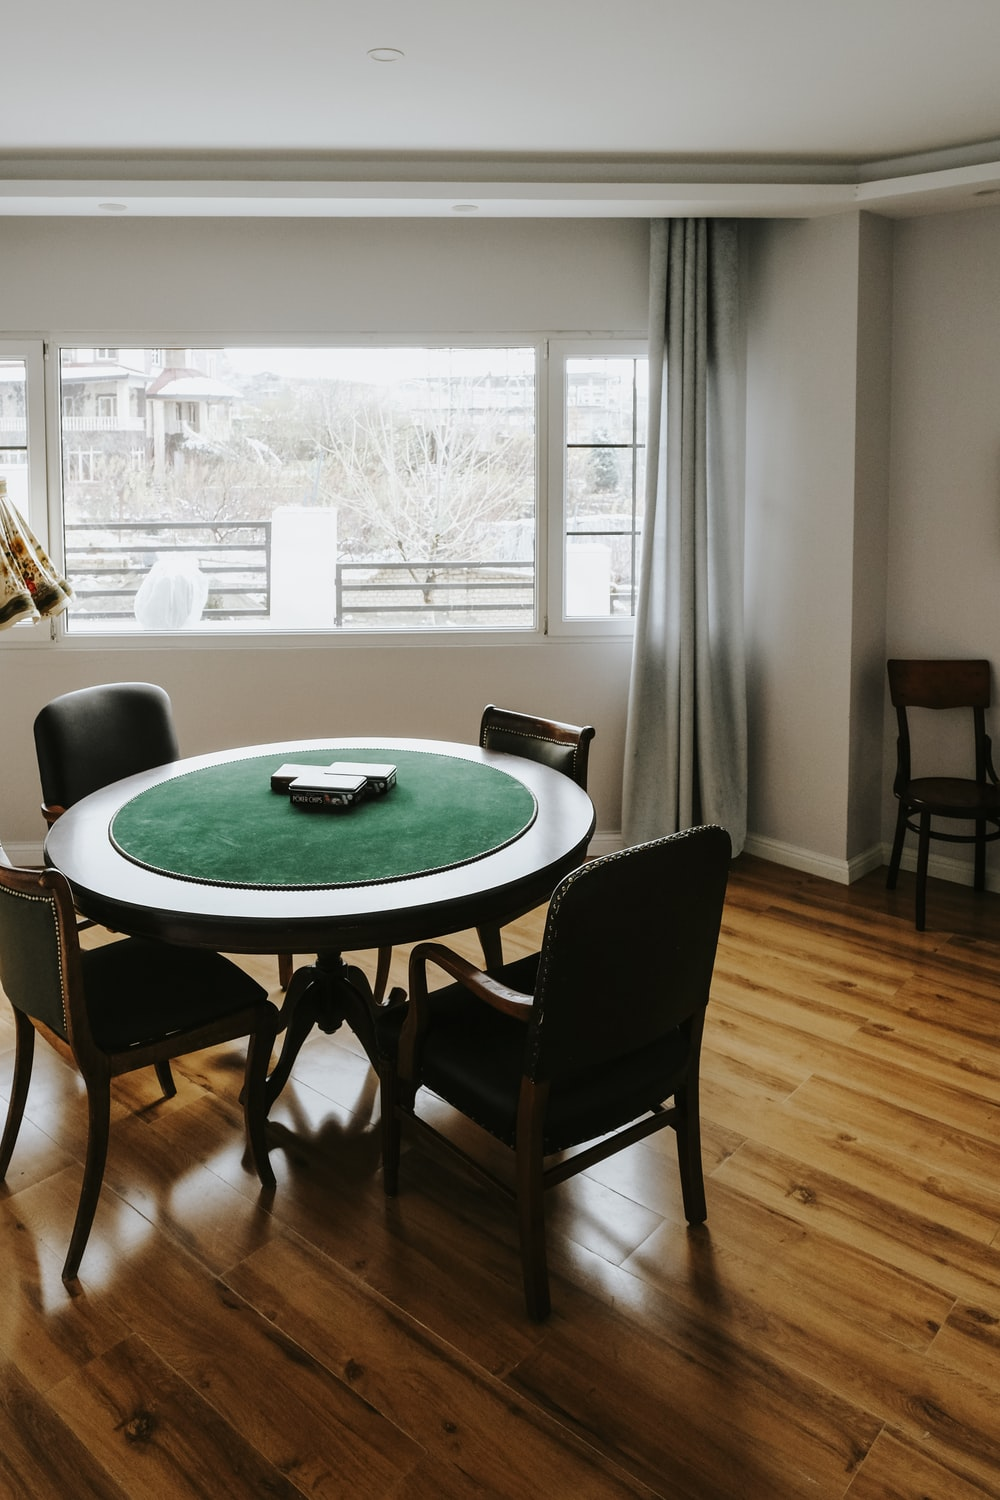 round green table with chairs